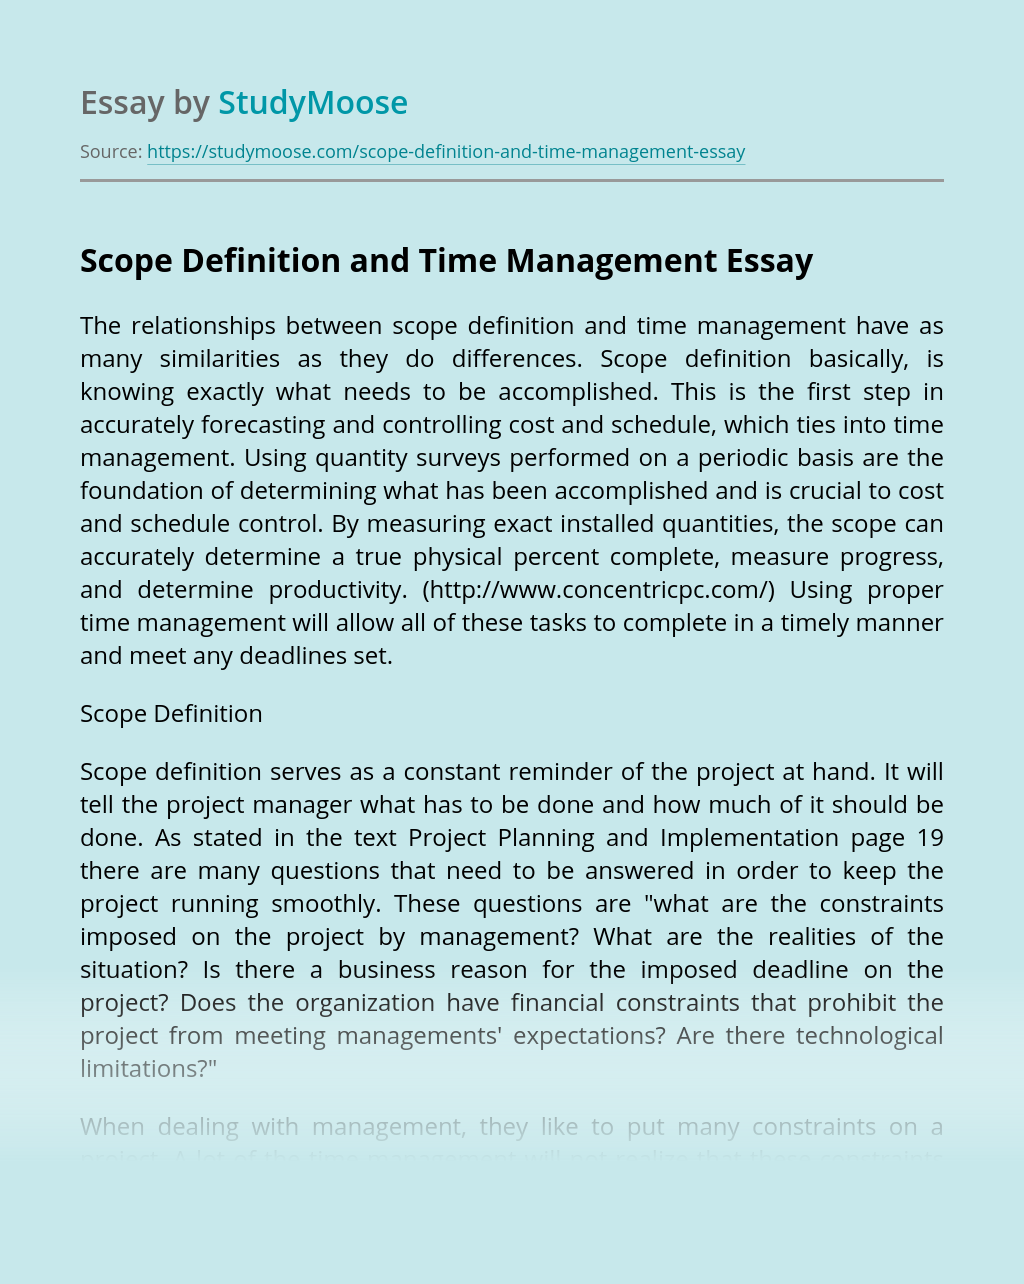 Scope Definition and Time Management